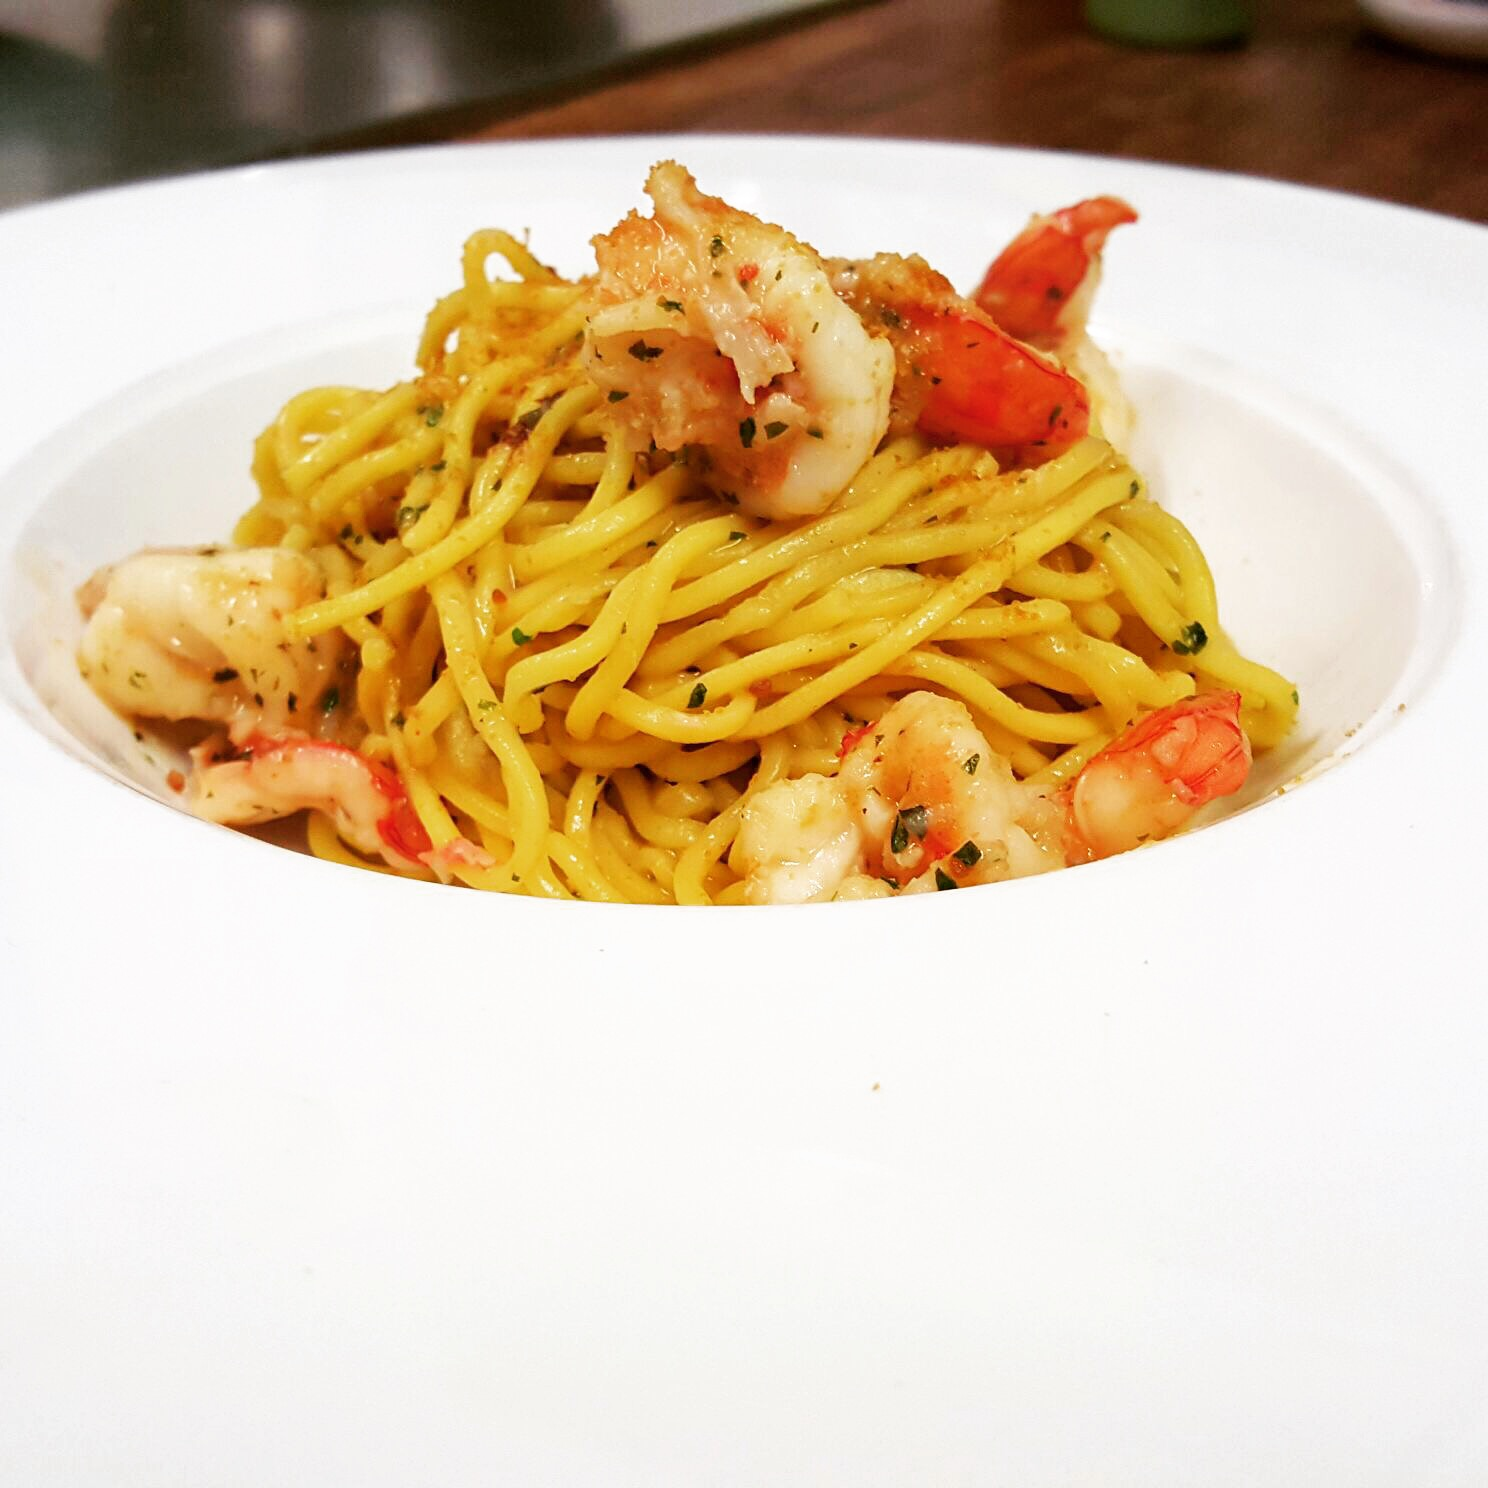 Homemade tagliolini with lemon, prawns and bottarga